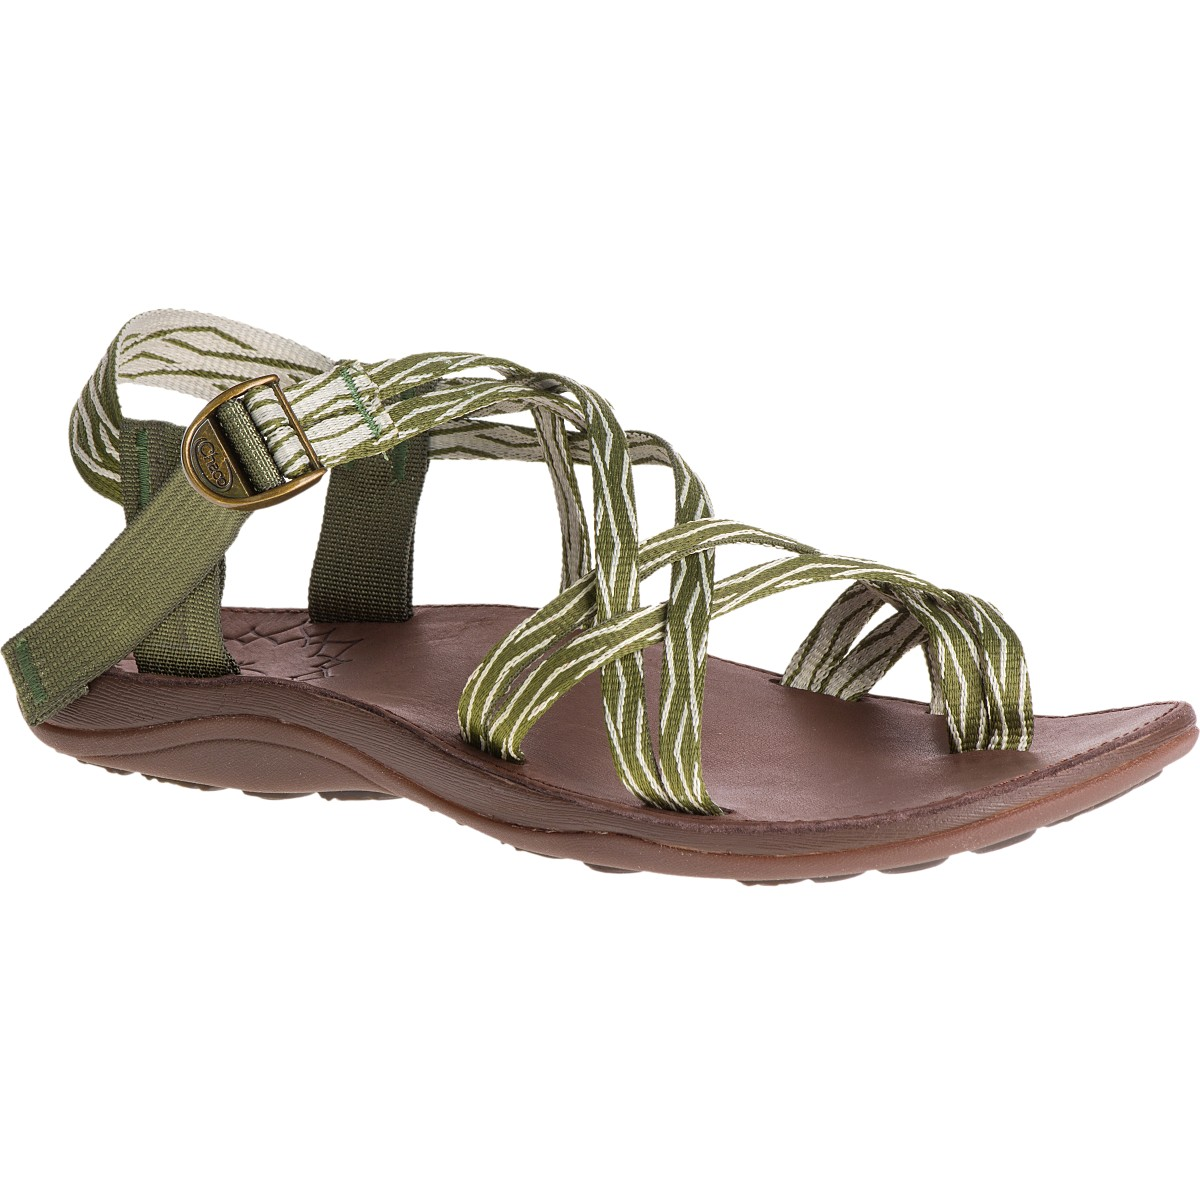 b702d2ffa310 Be the First to Review the Chaco Diana Sandal - Women s — Page 1